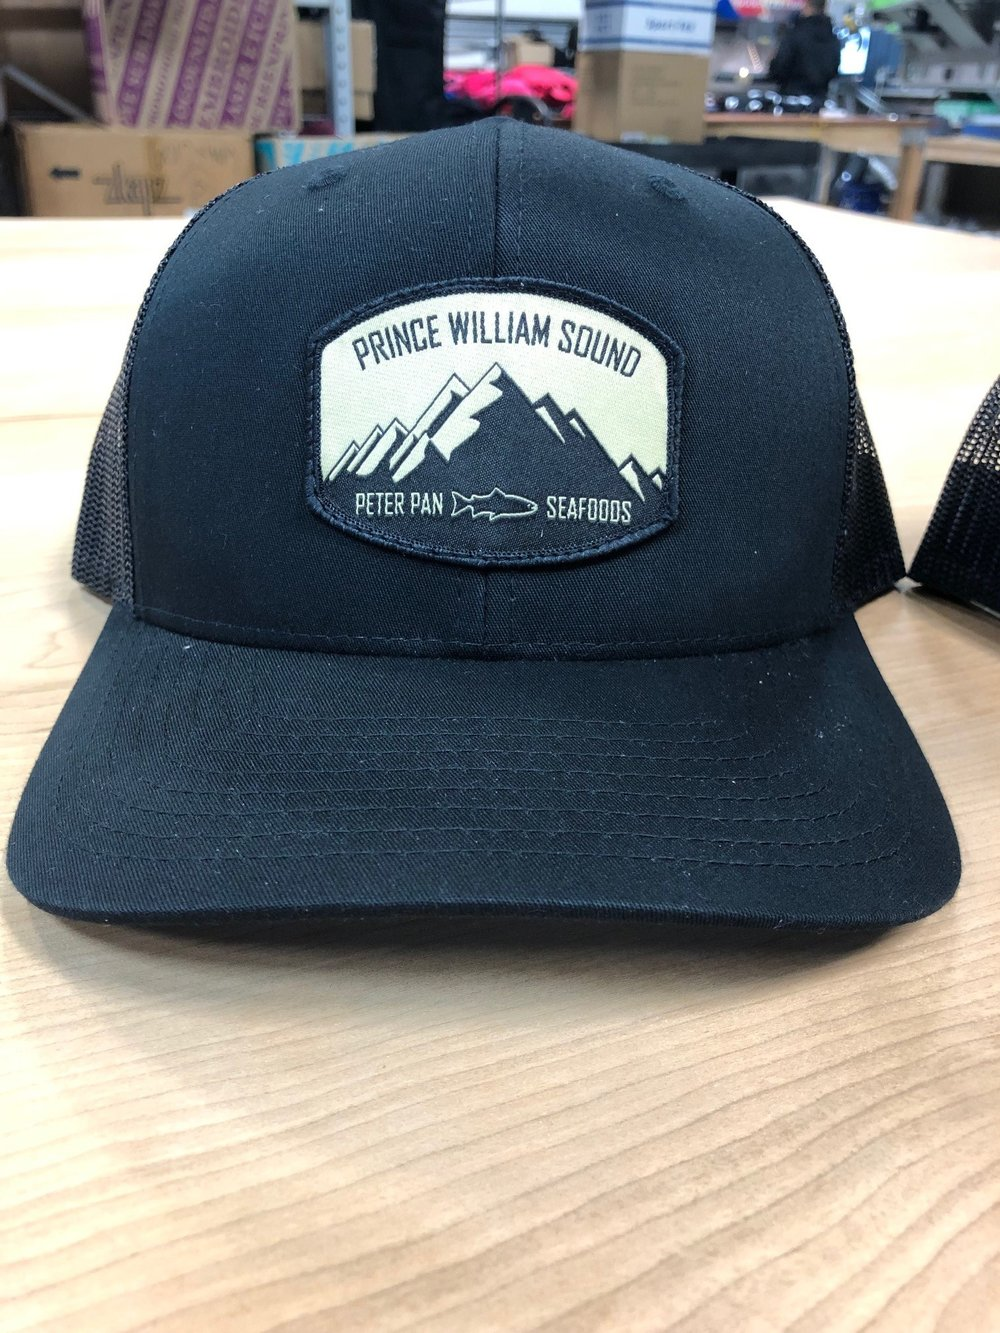 logounltd_laser_etching_embroidery_screen_printing_apparel_uniform_custom_tshirts_kirkland_bellevue_seattle_redmond_woodinville_branded_merchandise_promotional_products_logo_unltd_peterpanseafoods_alaska_veldez (4).jpg